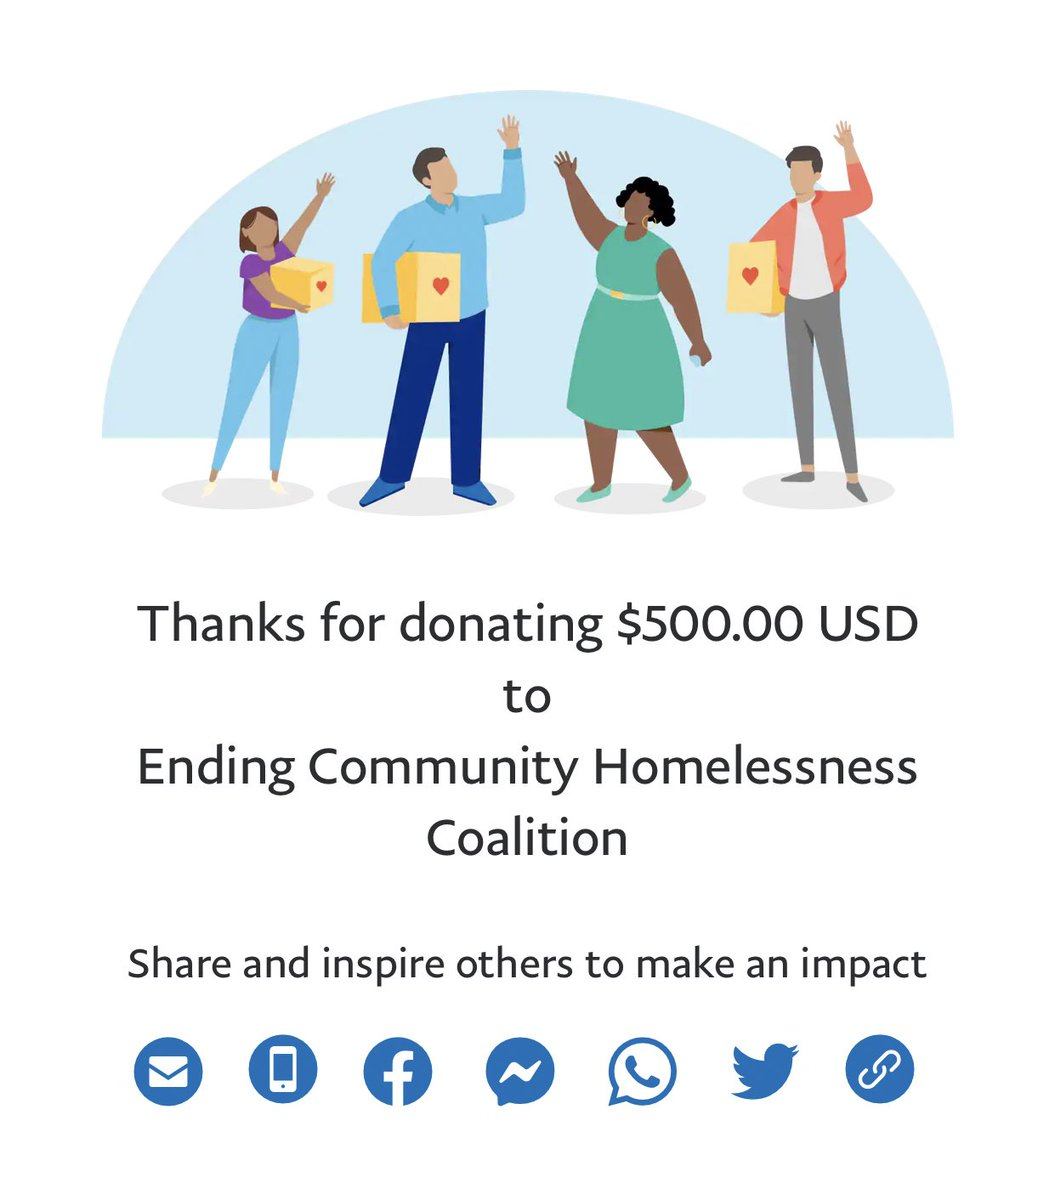 LosPollosTV - Because of last night's stream we able to donate over $2,000 to 4 different charities to help Texas ♥️  ECHO (Ending Community Homelessness Coalition)   Central Texas Food Bank  The San Antonio Food Bank  The Bridge Homeless Recovery Center